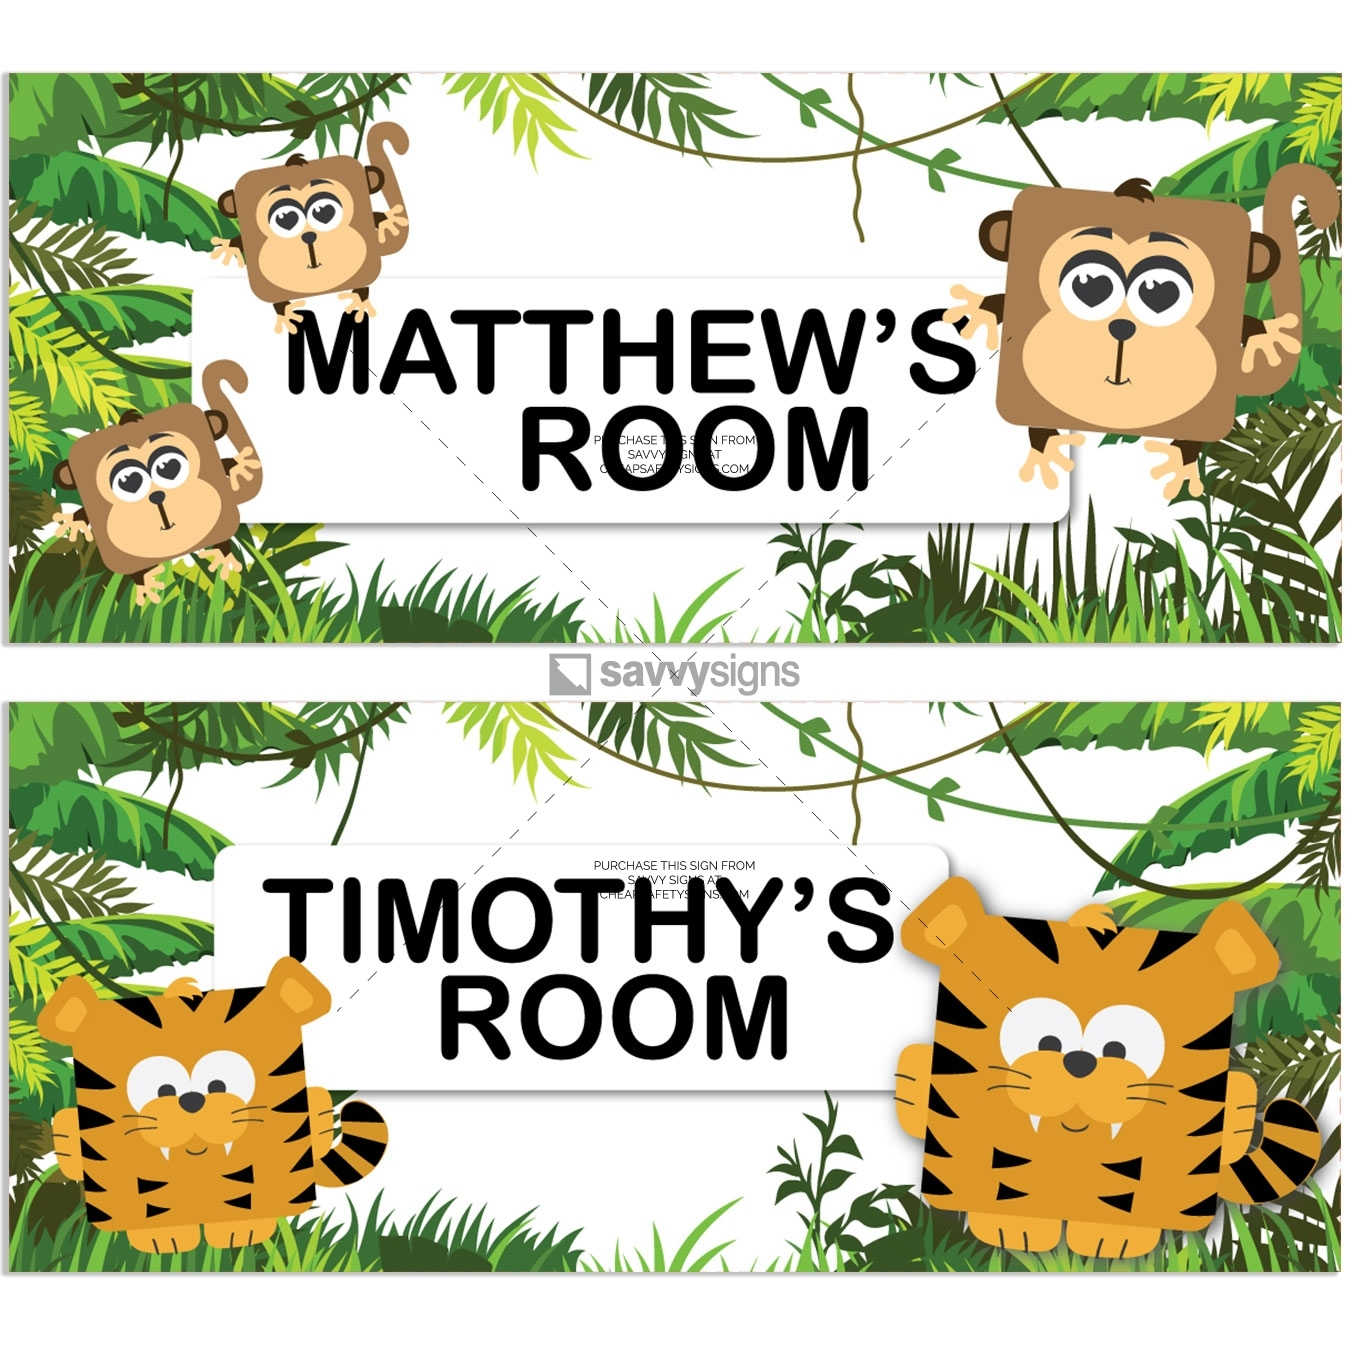 SSFUN3-Jungle-D-Kids-Bedroom-Door-Sign_Savvy-Signs_v1